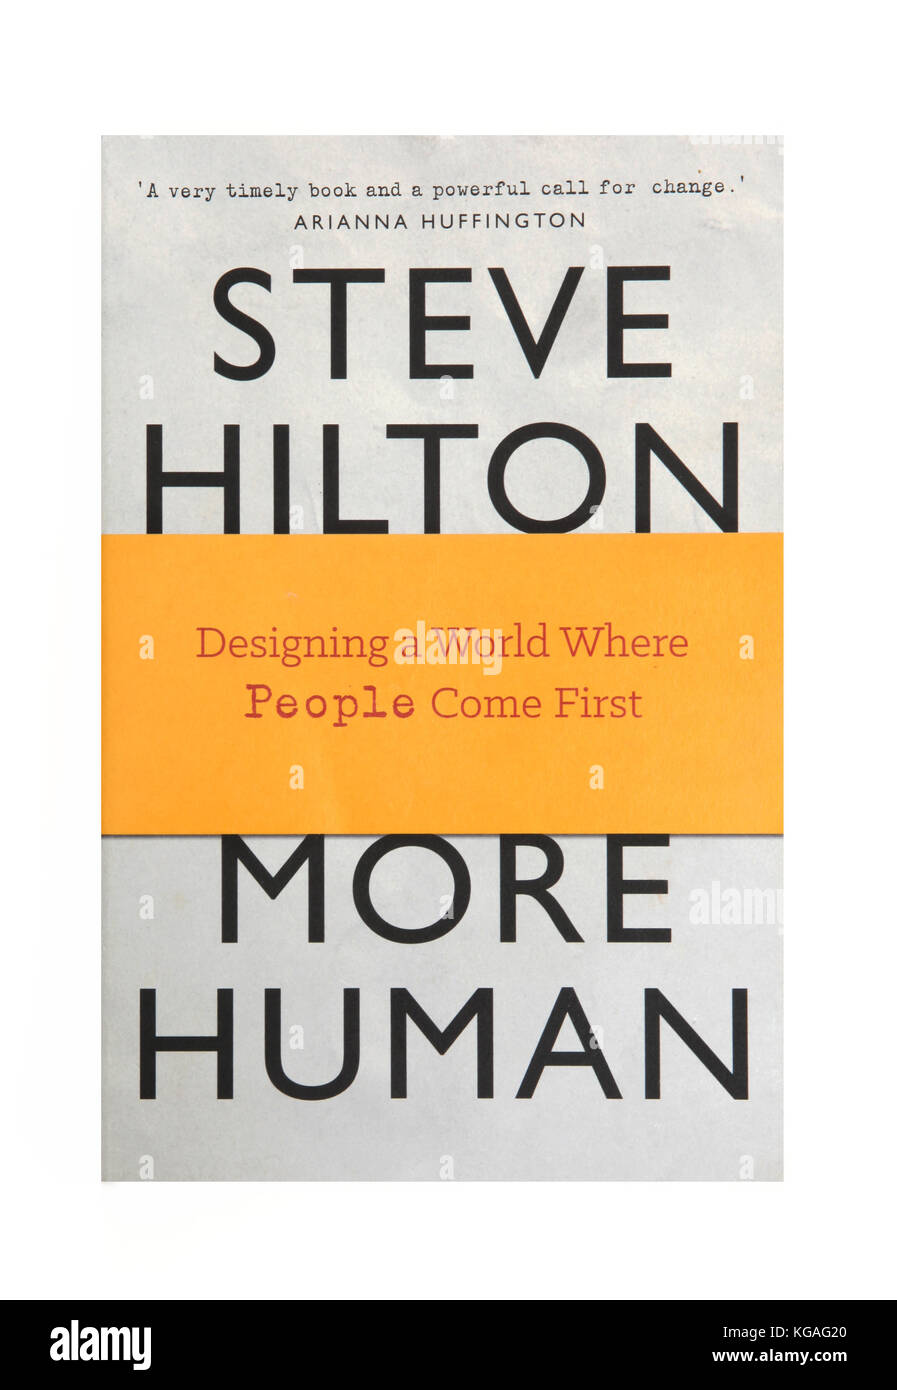 The book More Human by Steve Hilton - Designing a World Where People Come First - Stock Image